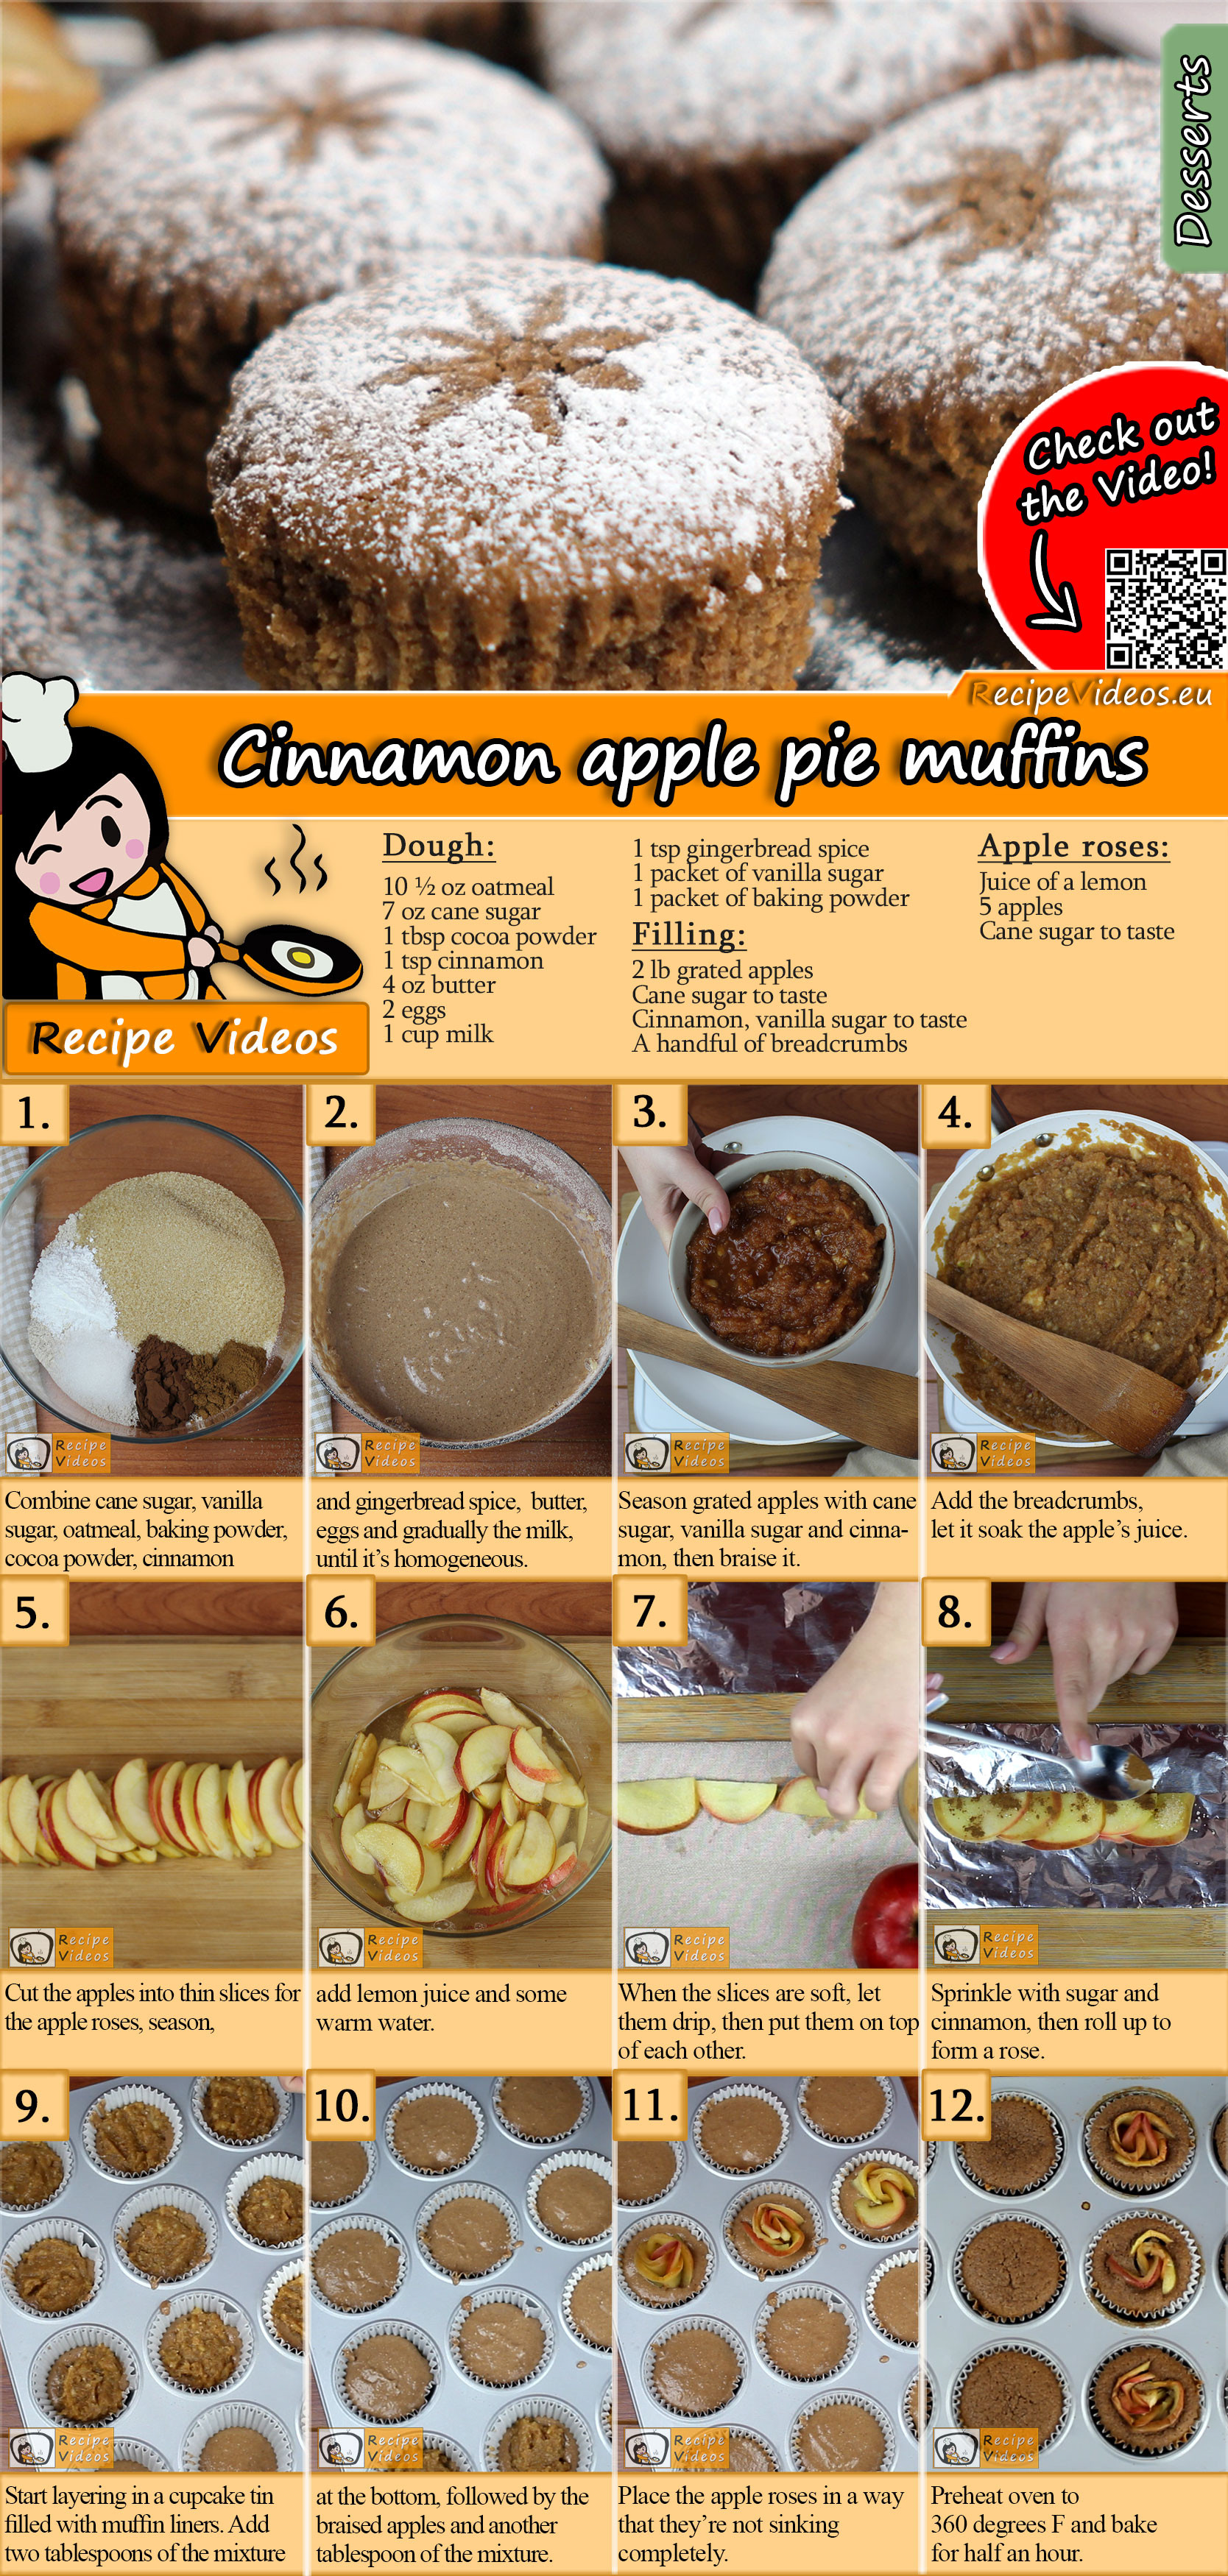 Cinnamon apple pie muffins recipe with video